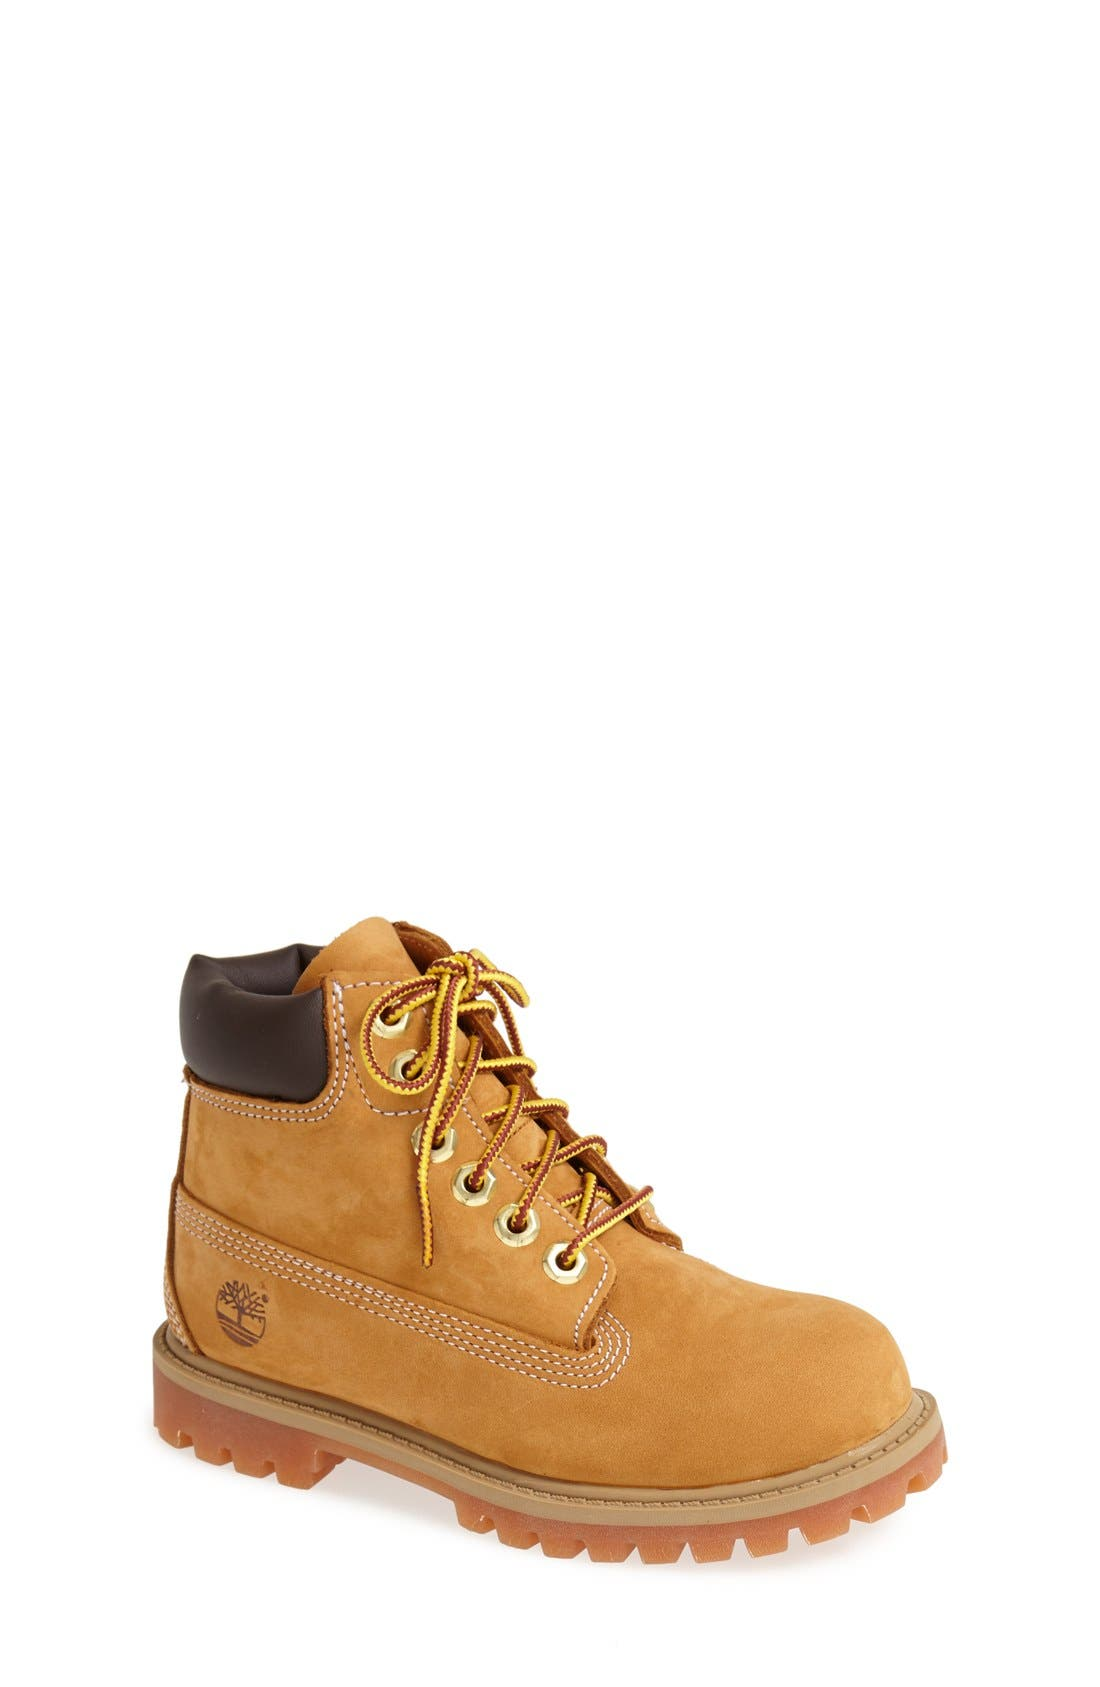 '6 Inch Premium' Waterproof Boot,                             Main thumbnail 1, color,                             Wheat Nubuck